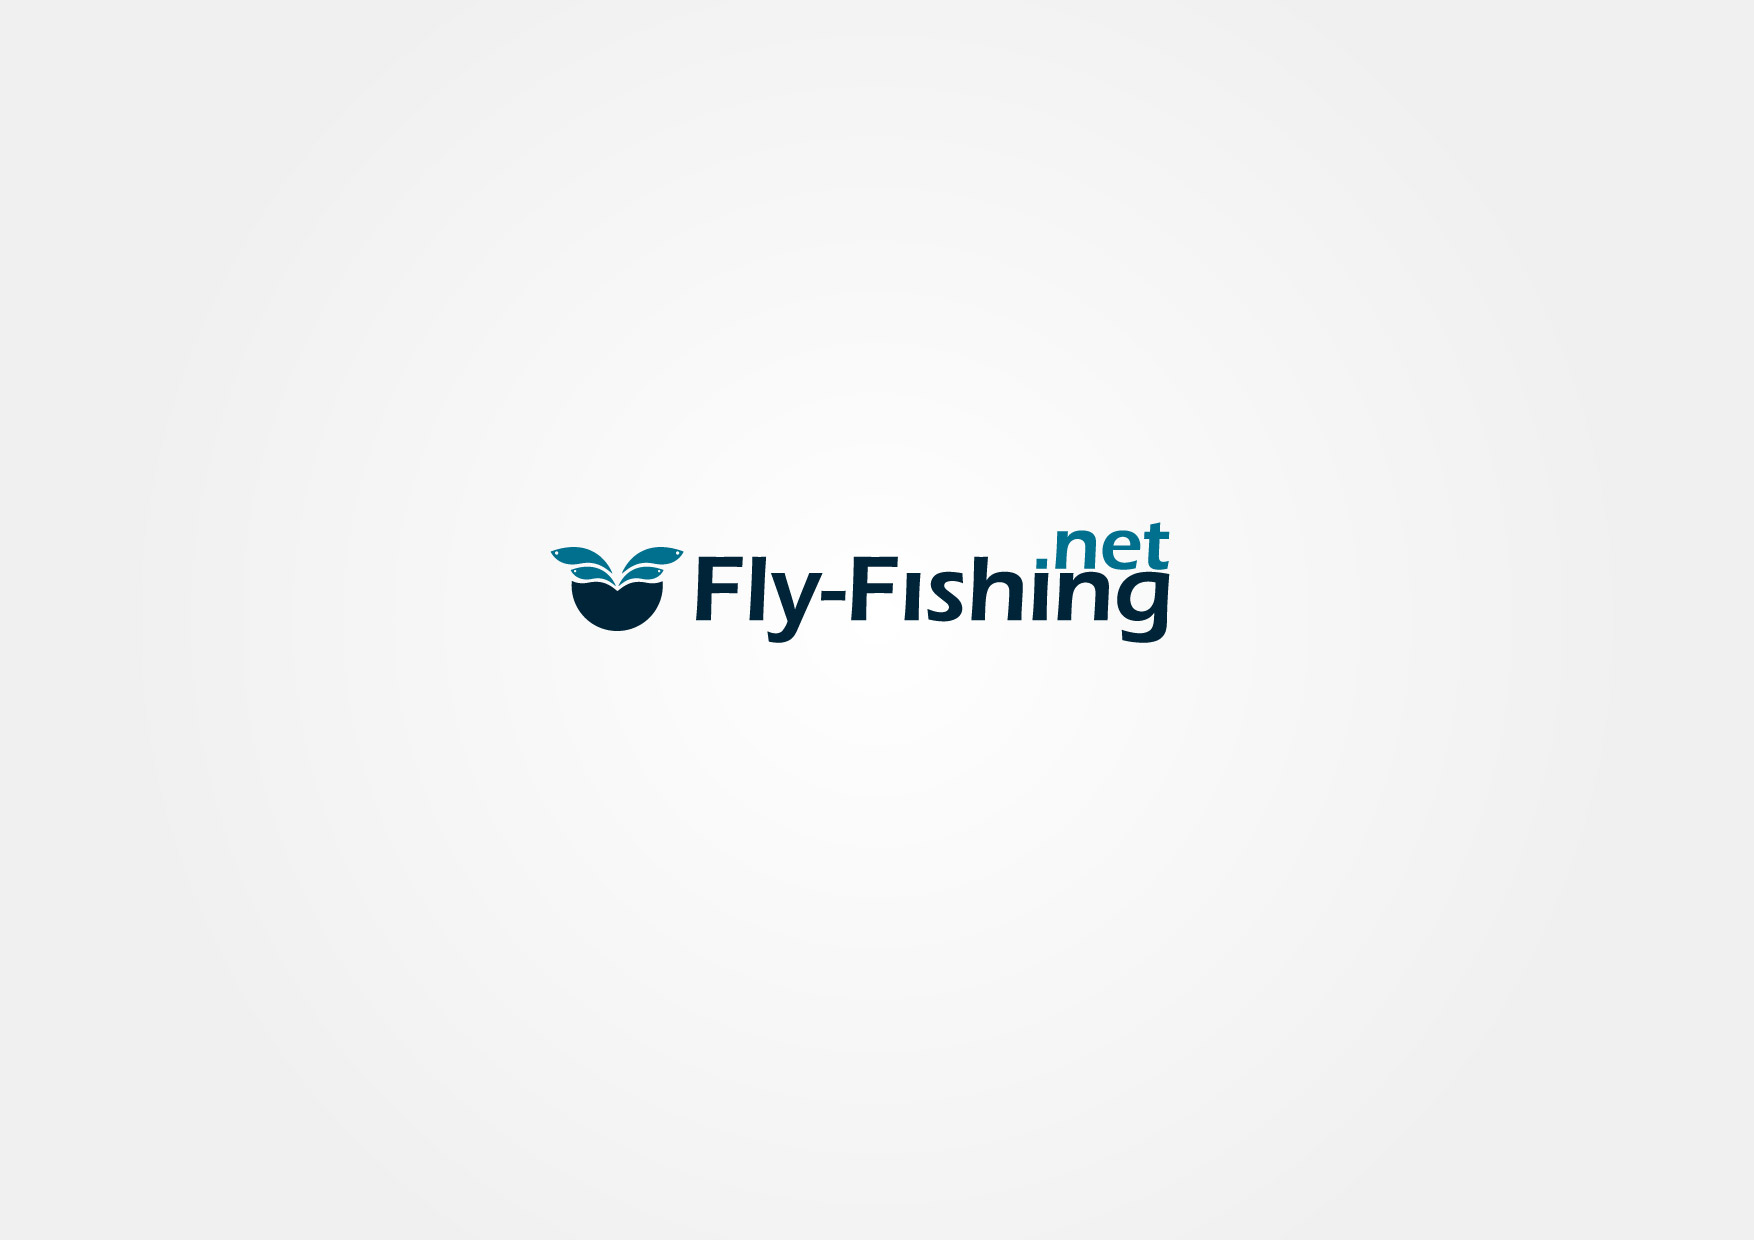 Logo Design by Osi Indra - Entry No. 26 in the Logo Design Contest Artistic Logo Design for fly-fishing.net.